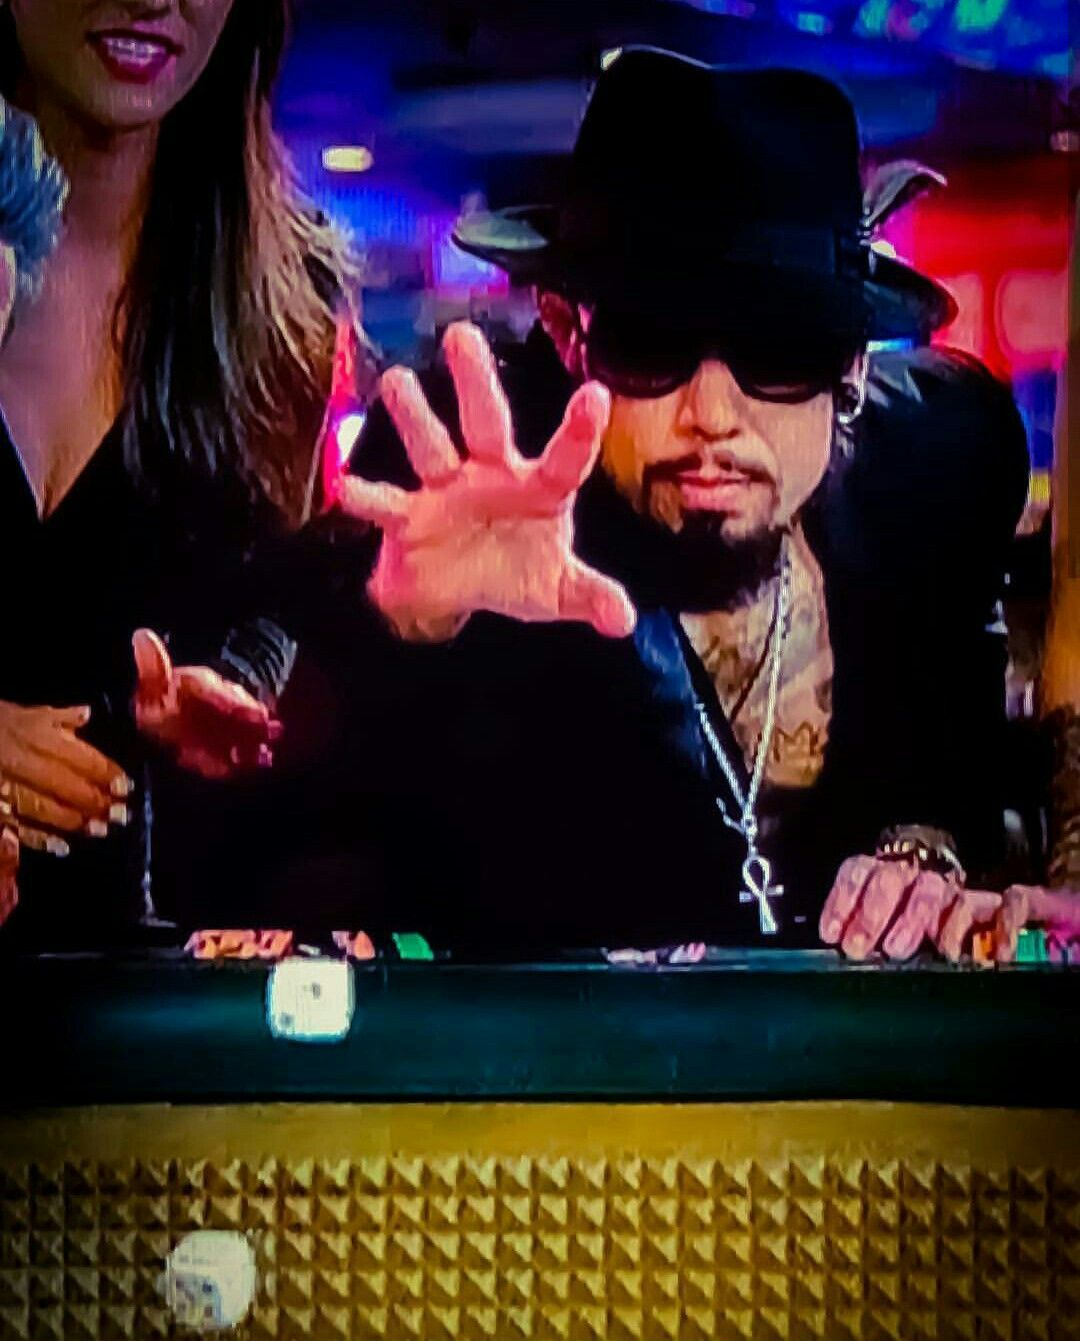 Pin by Monika C. on Dave Navarro. New obsession? Dave